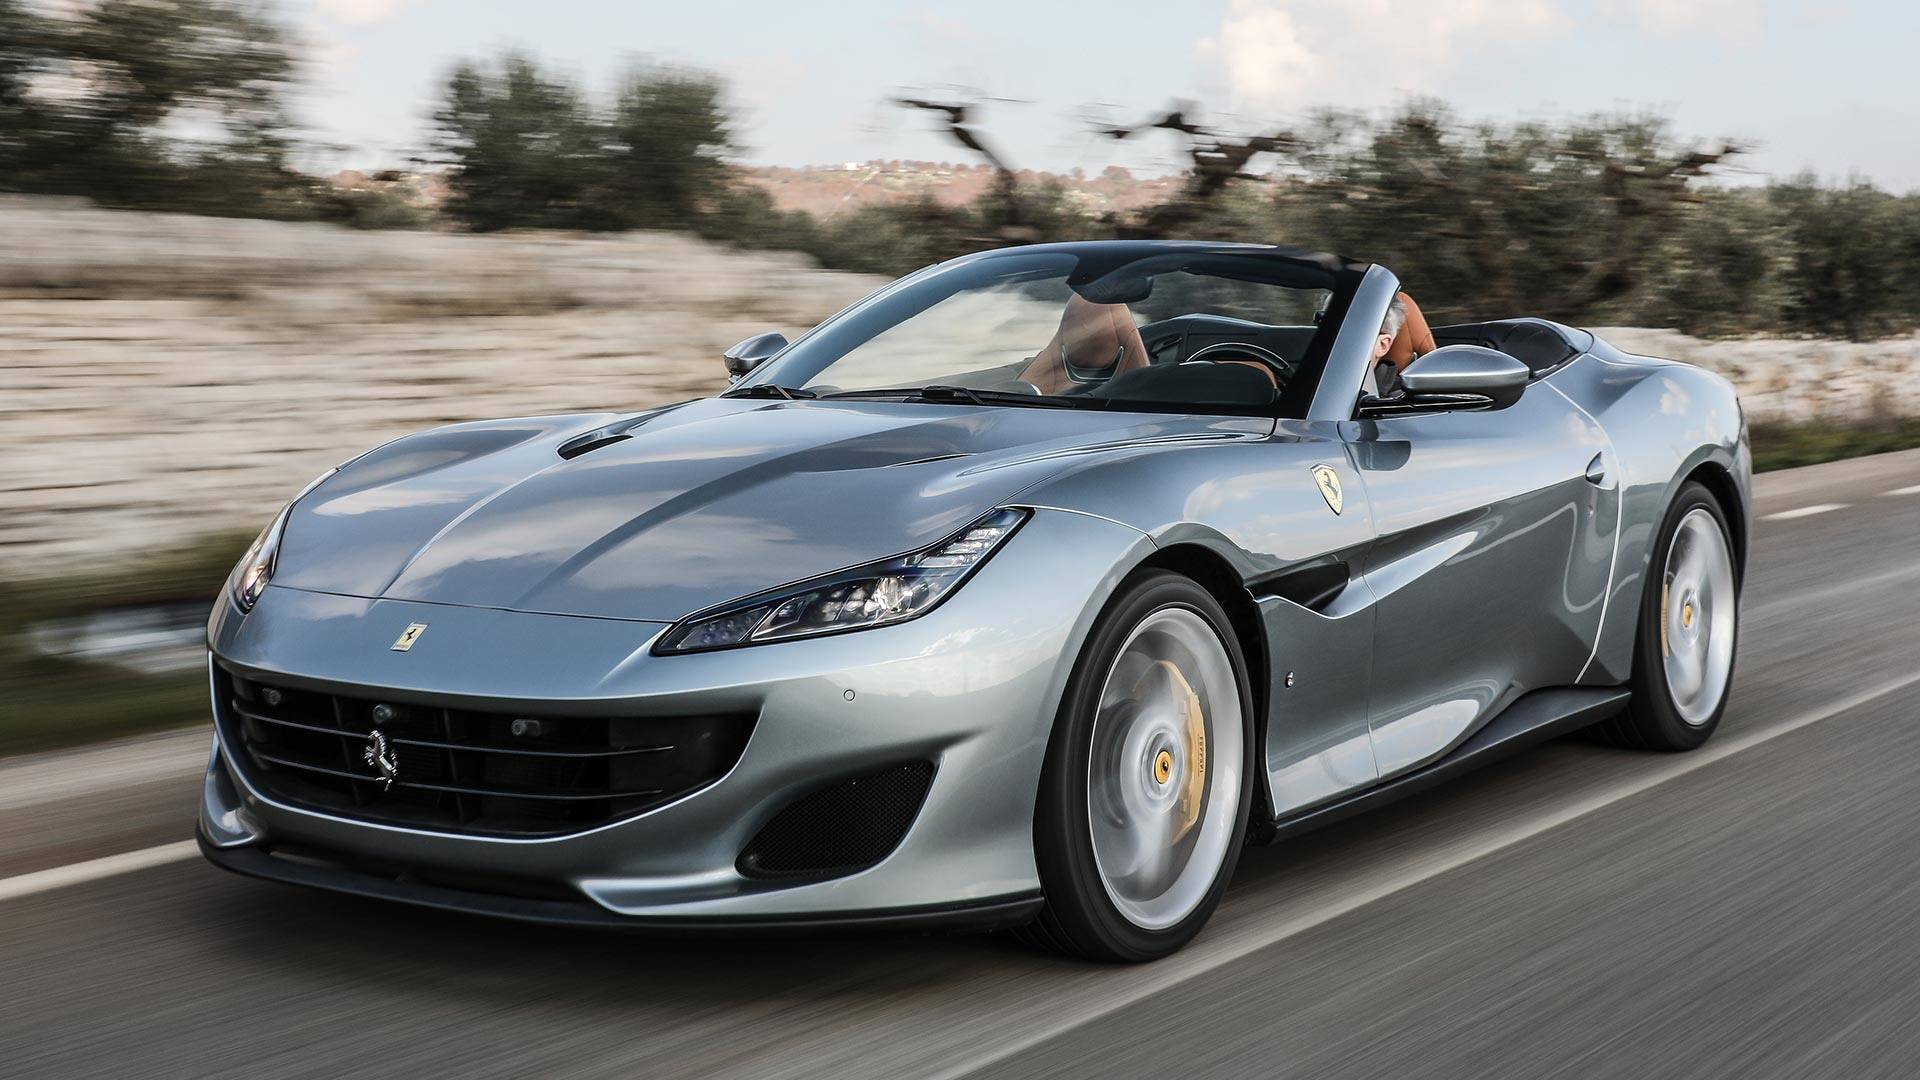 Ferrari Tempers 2020 Expectations With Cautious Upgrade Stock Market Today